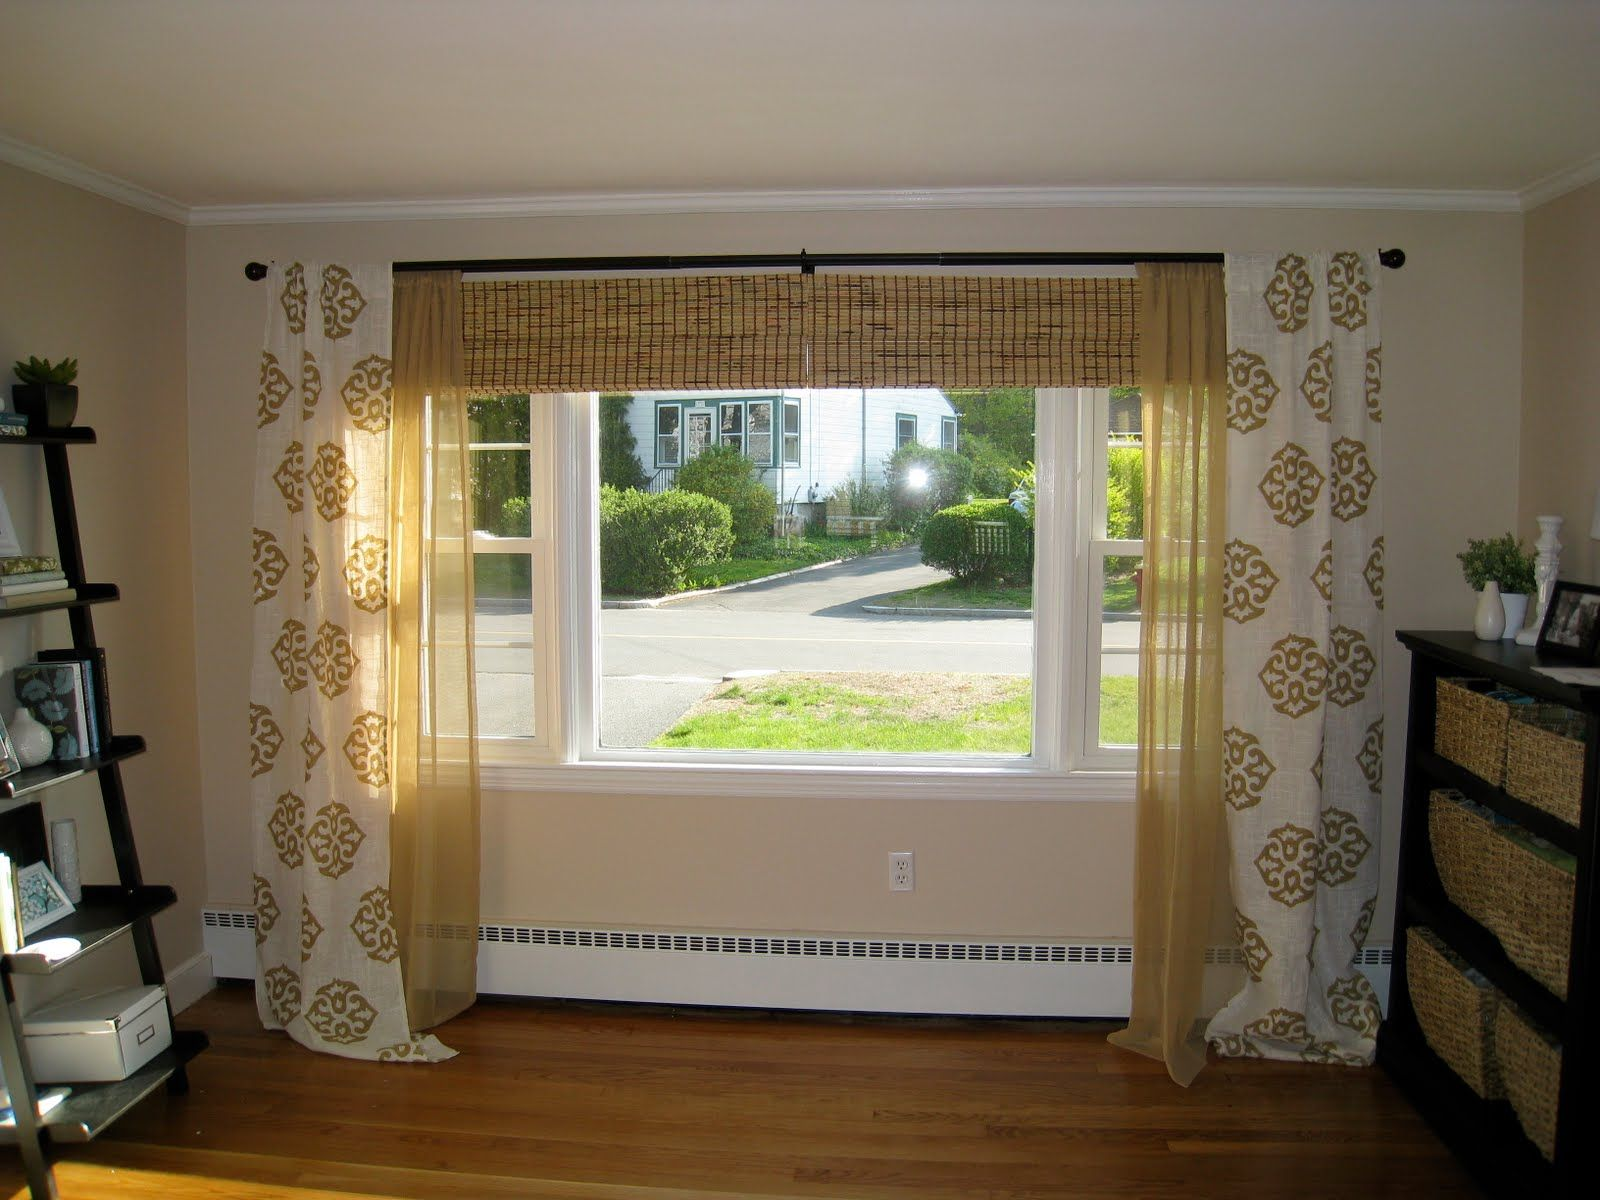 Window covering ideas  window ideas for living room  curtains round   yard and porch